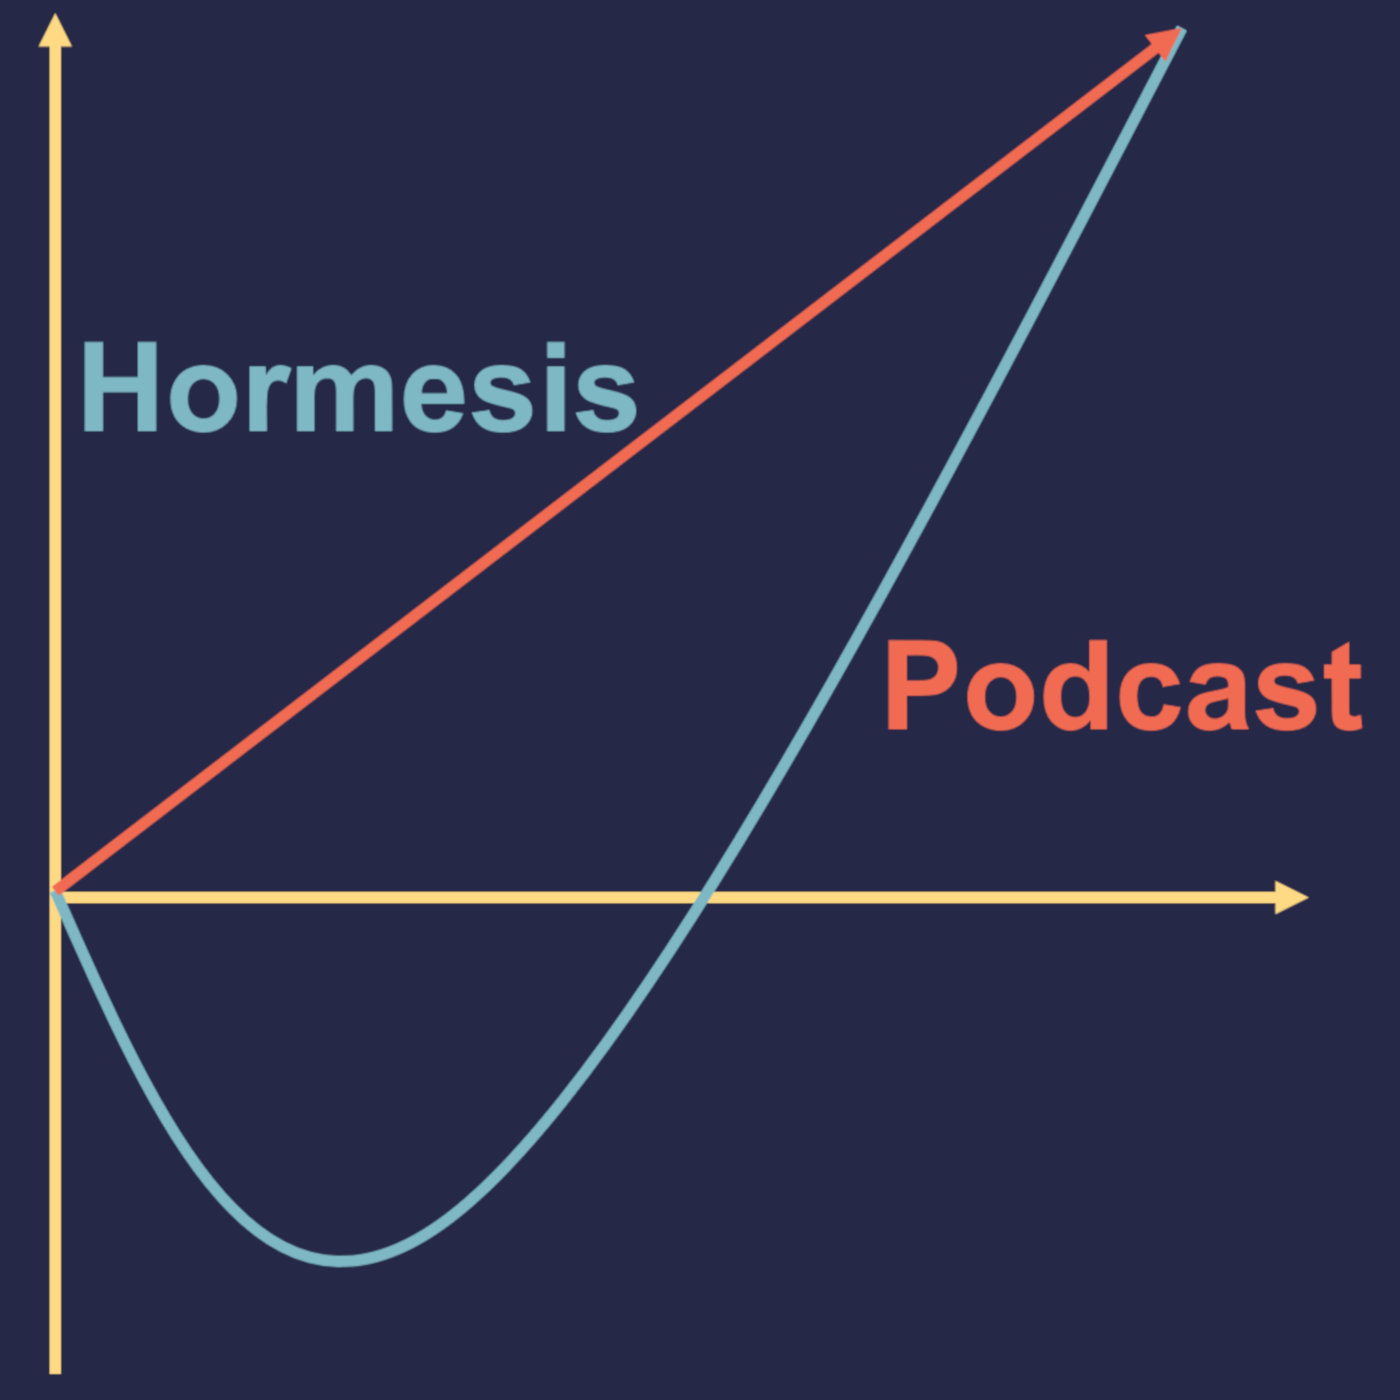 Hormesis Podcast